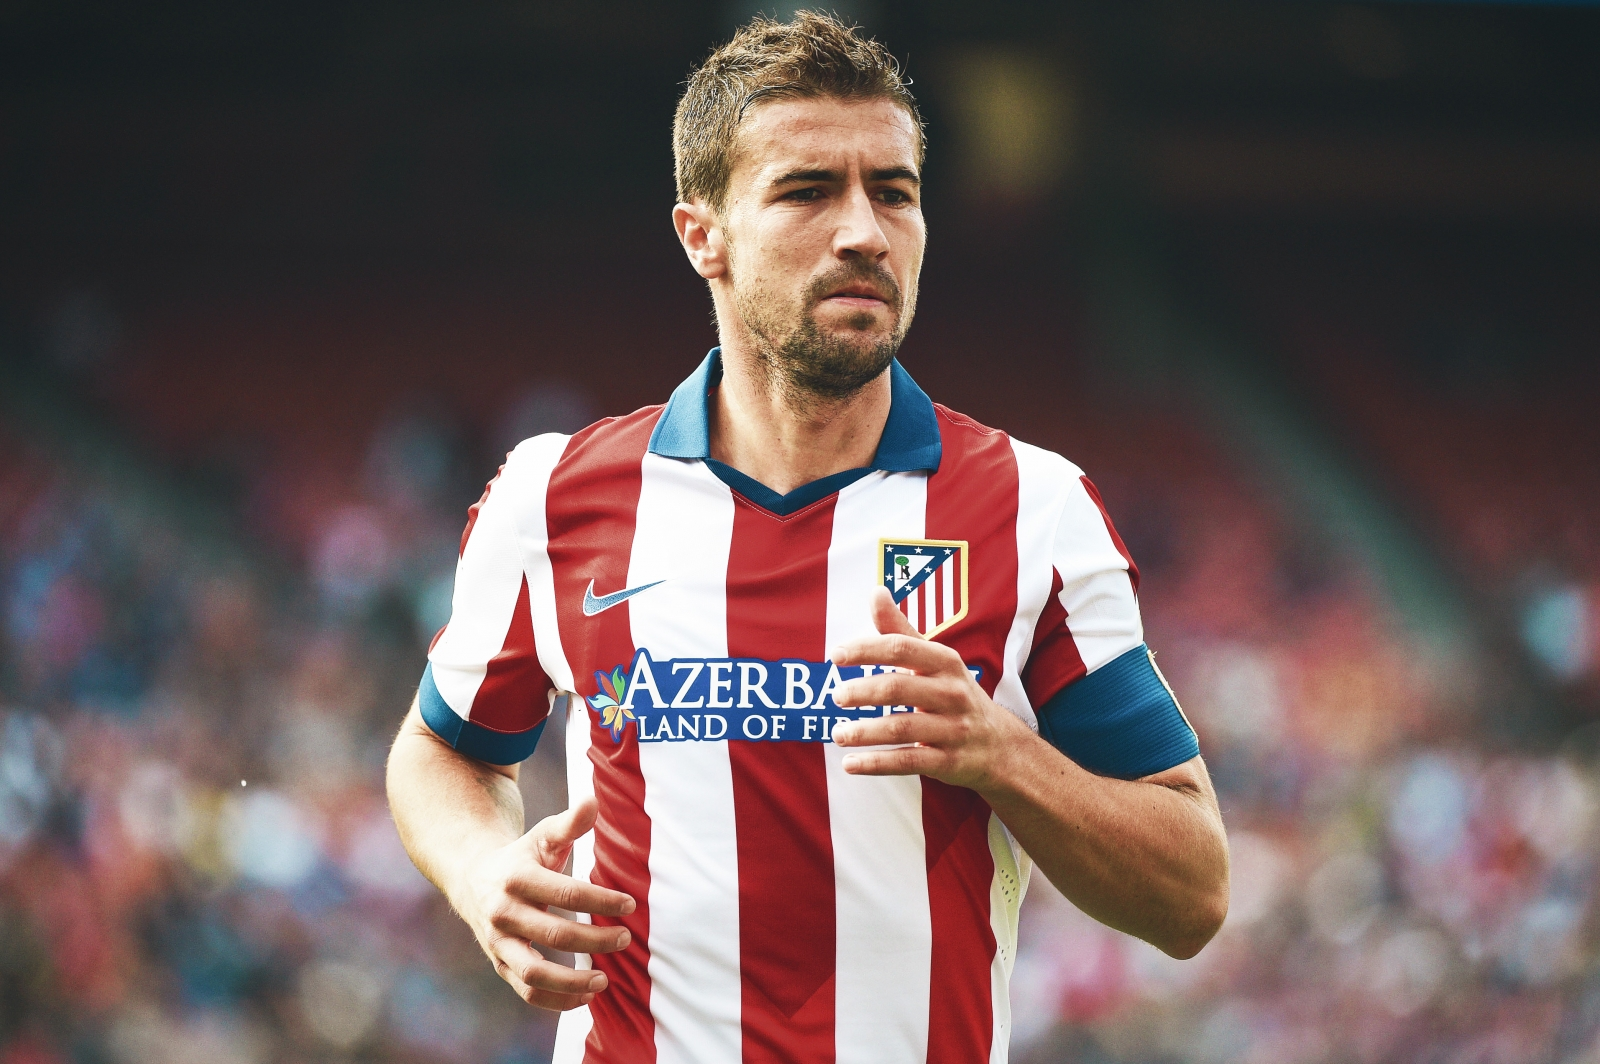 afca39f24a8 How the understated Gabi rose to help Diego Simeone take Atlético Madrid to  new heights